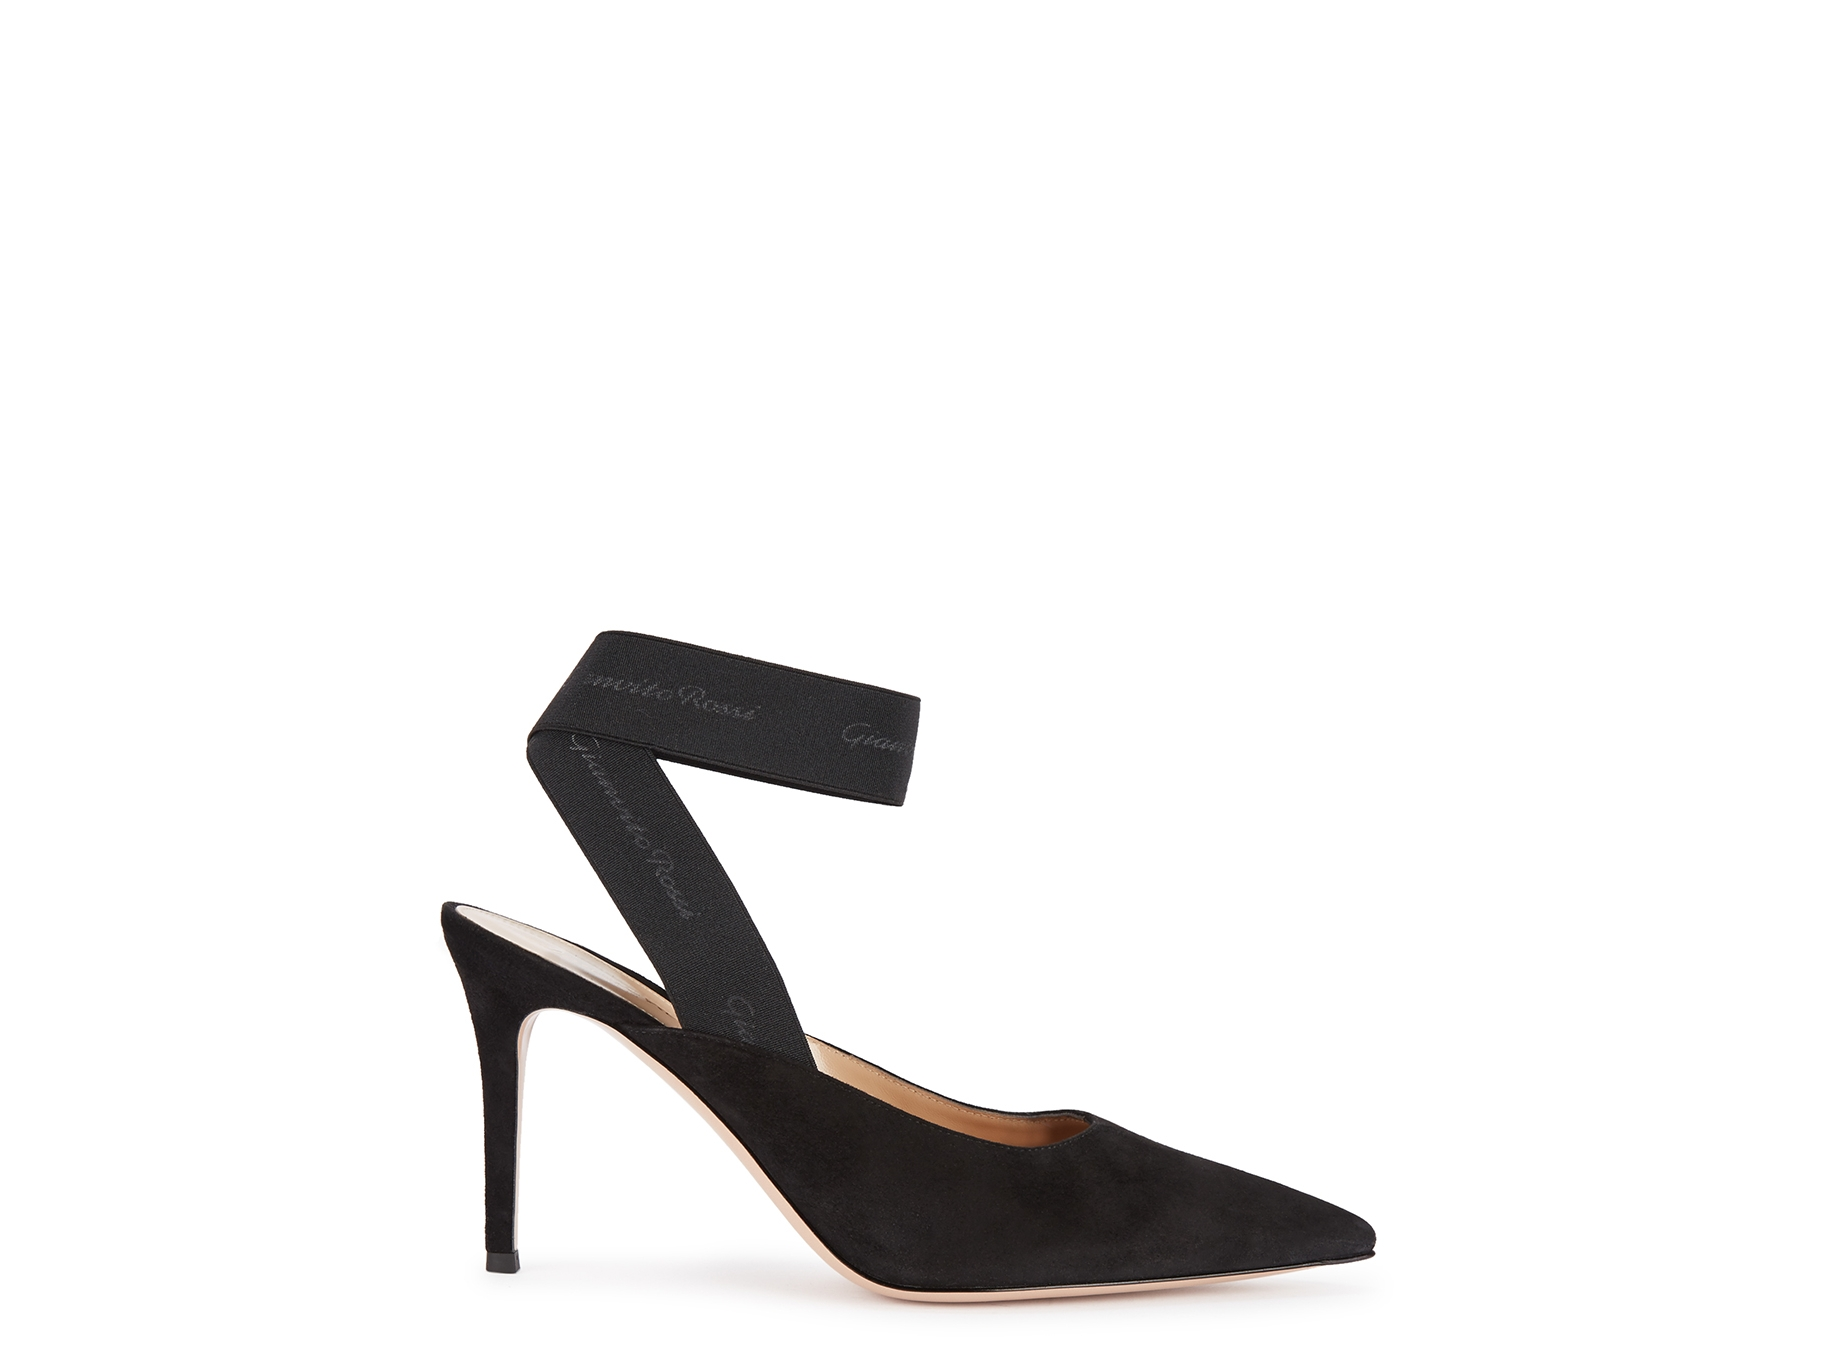 f25585fbcde Gianvito Rossi 85 black suede pumps - Harvey Nichols